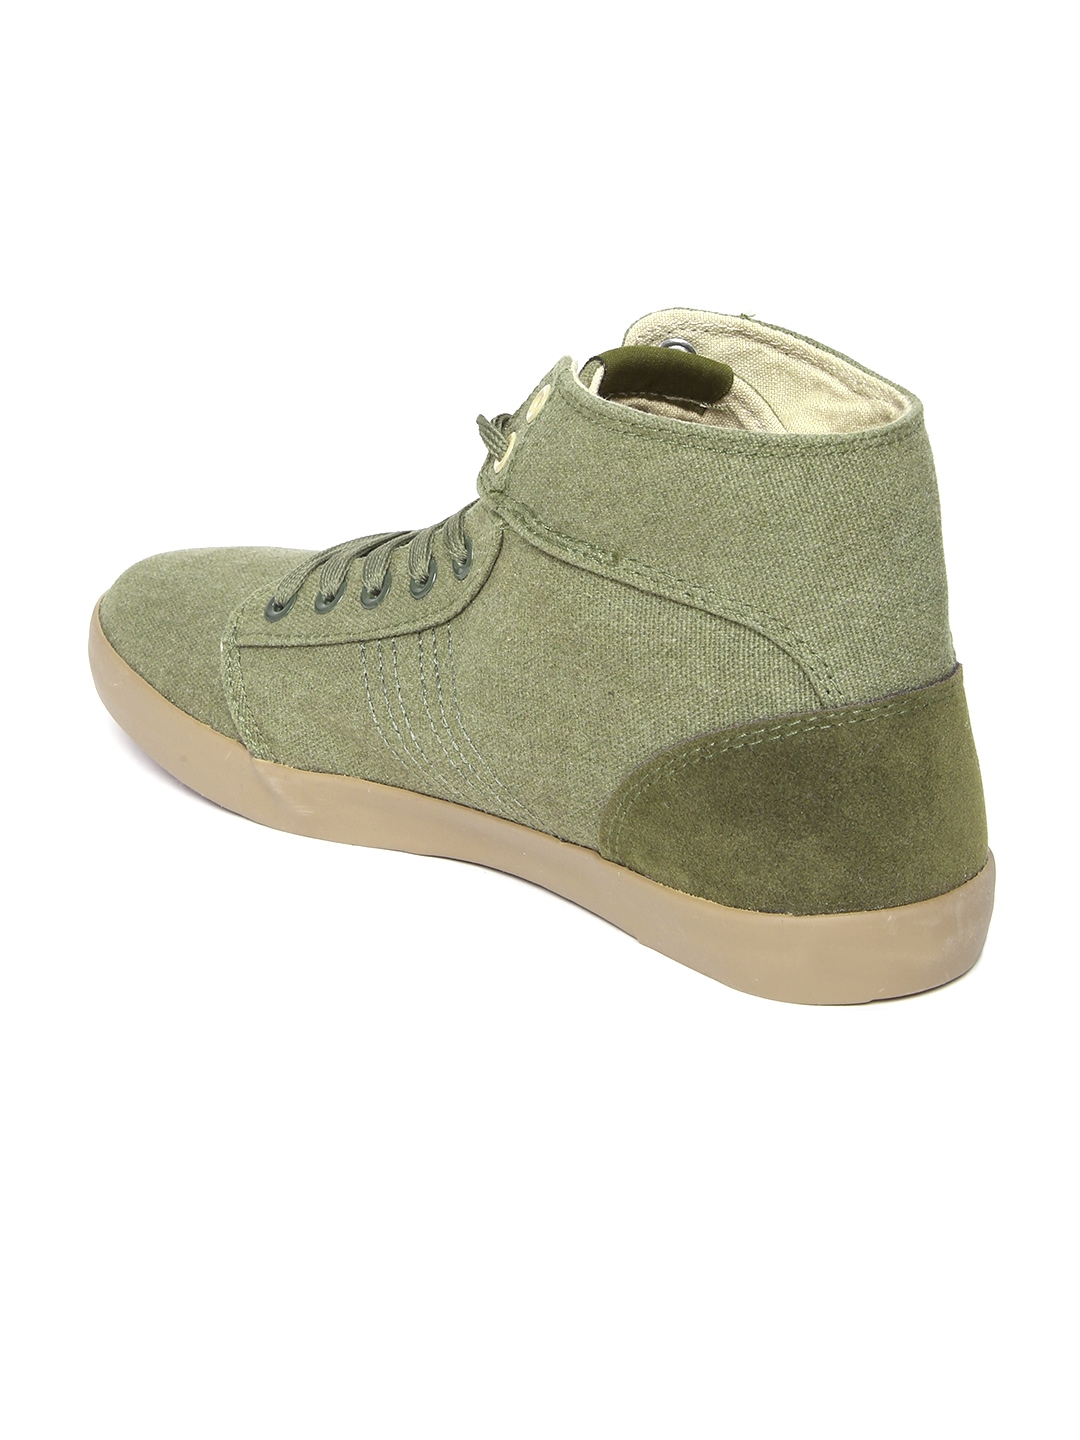 myntra roadster olive green canvas shoes 886654 buy